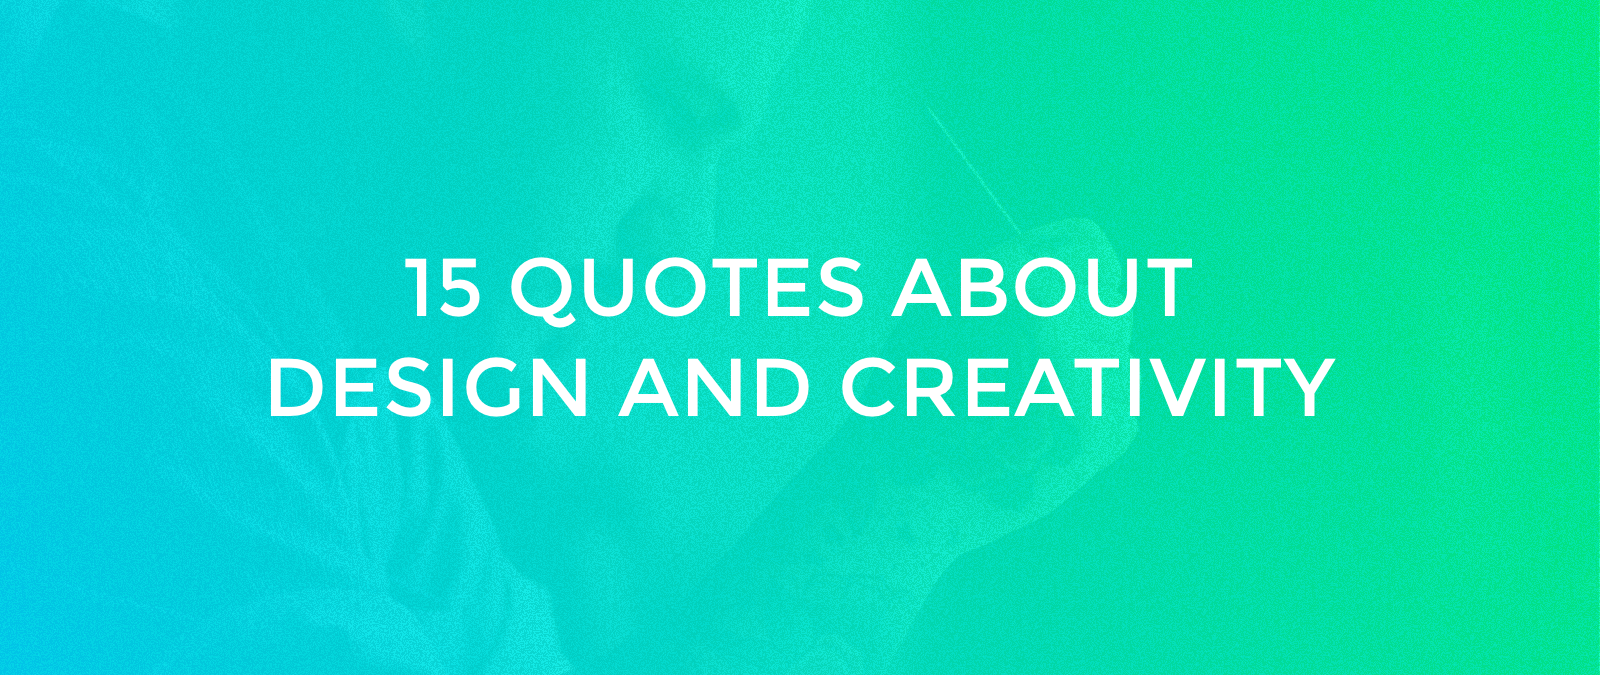 Quotes On Creativity Best 15 Quotes About Design And Creativity  Website Elements  Pinterest . Inspiration Design